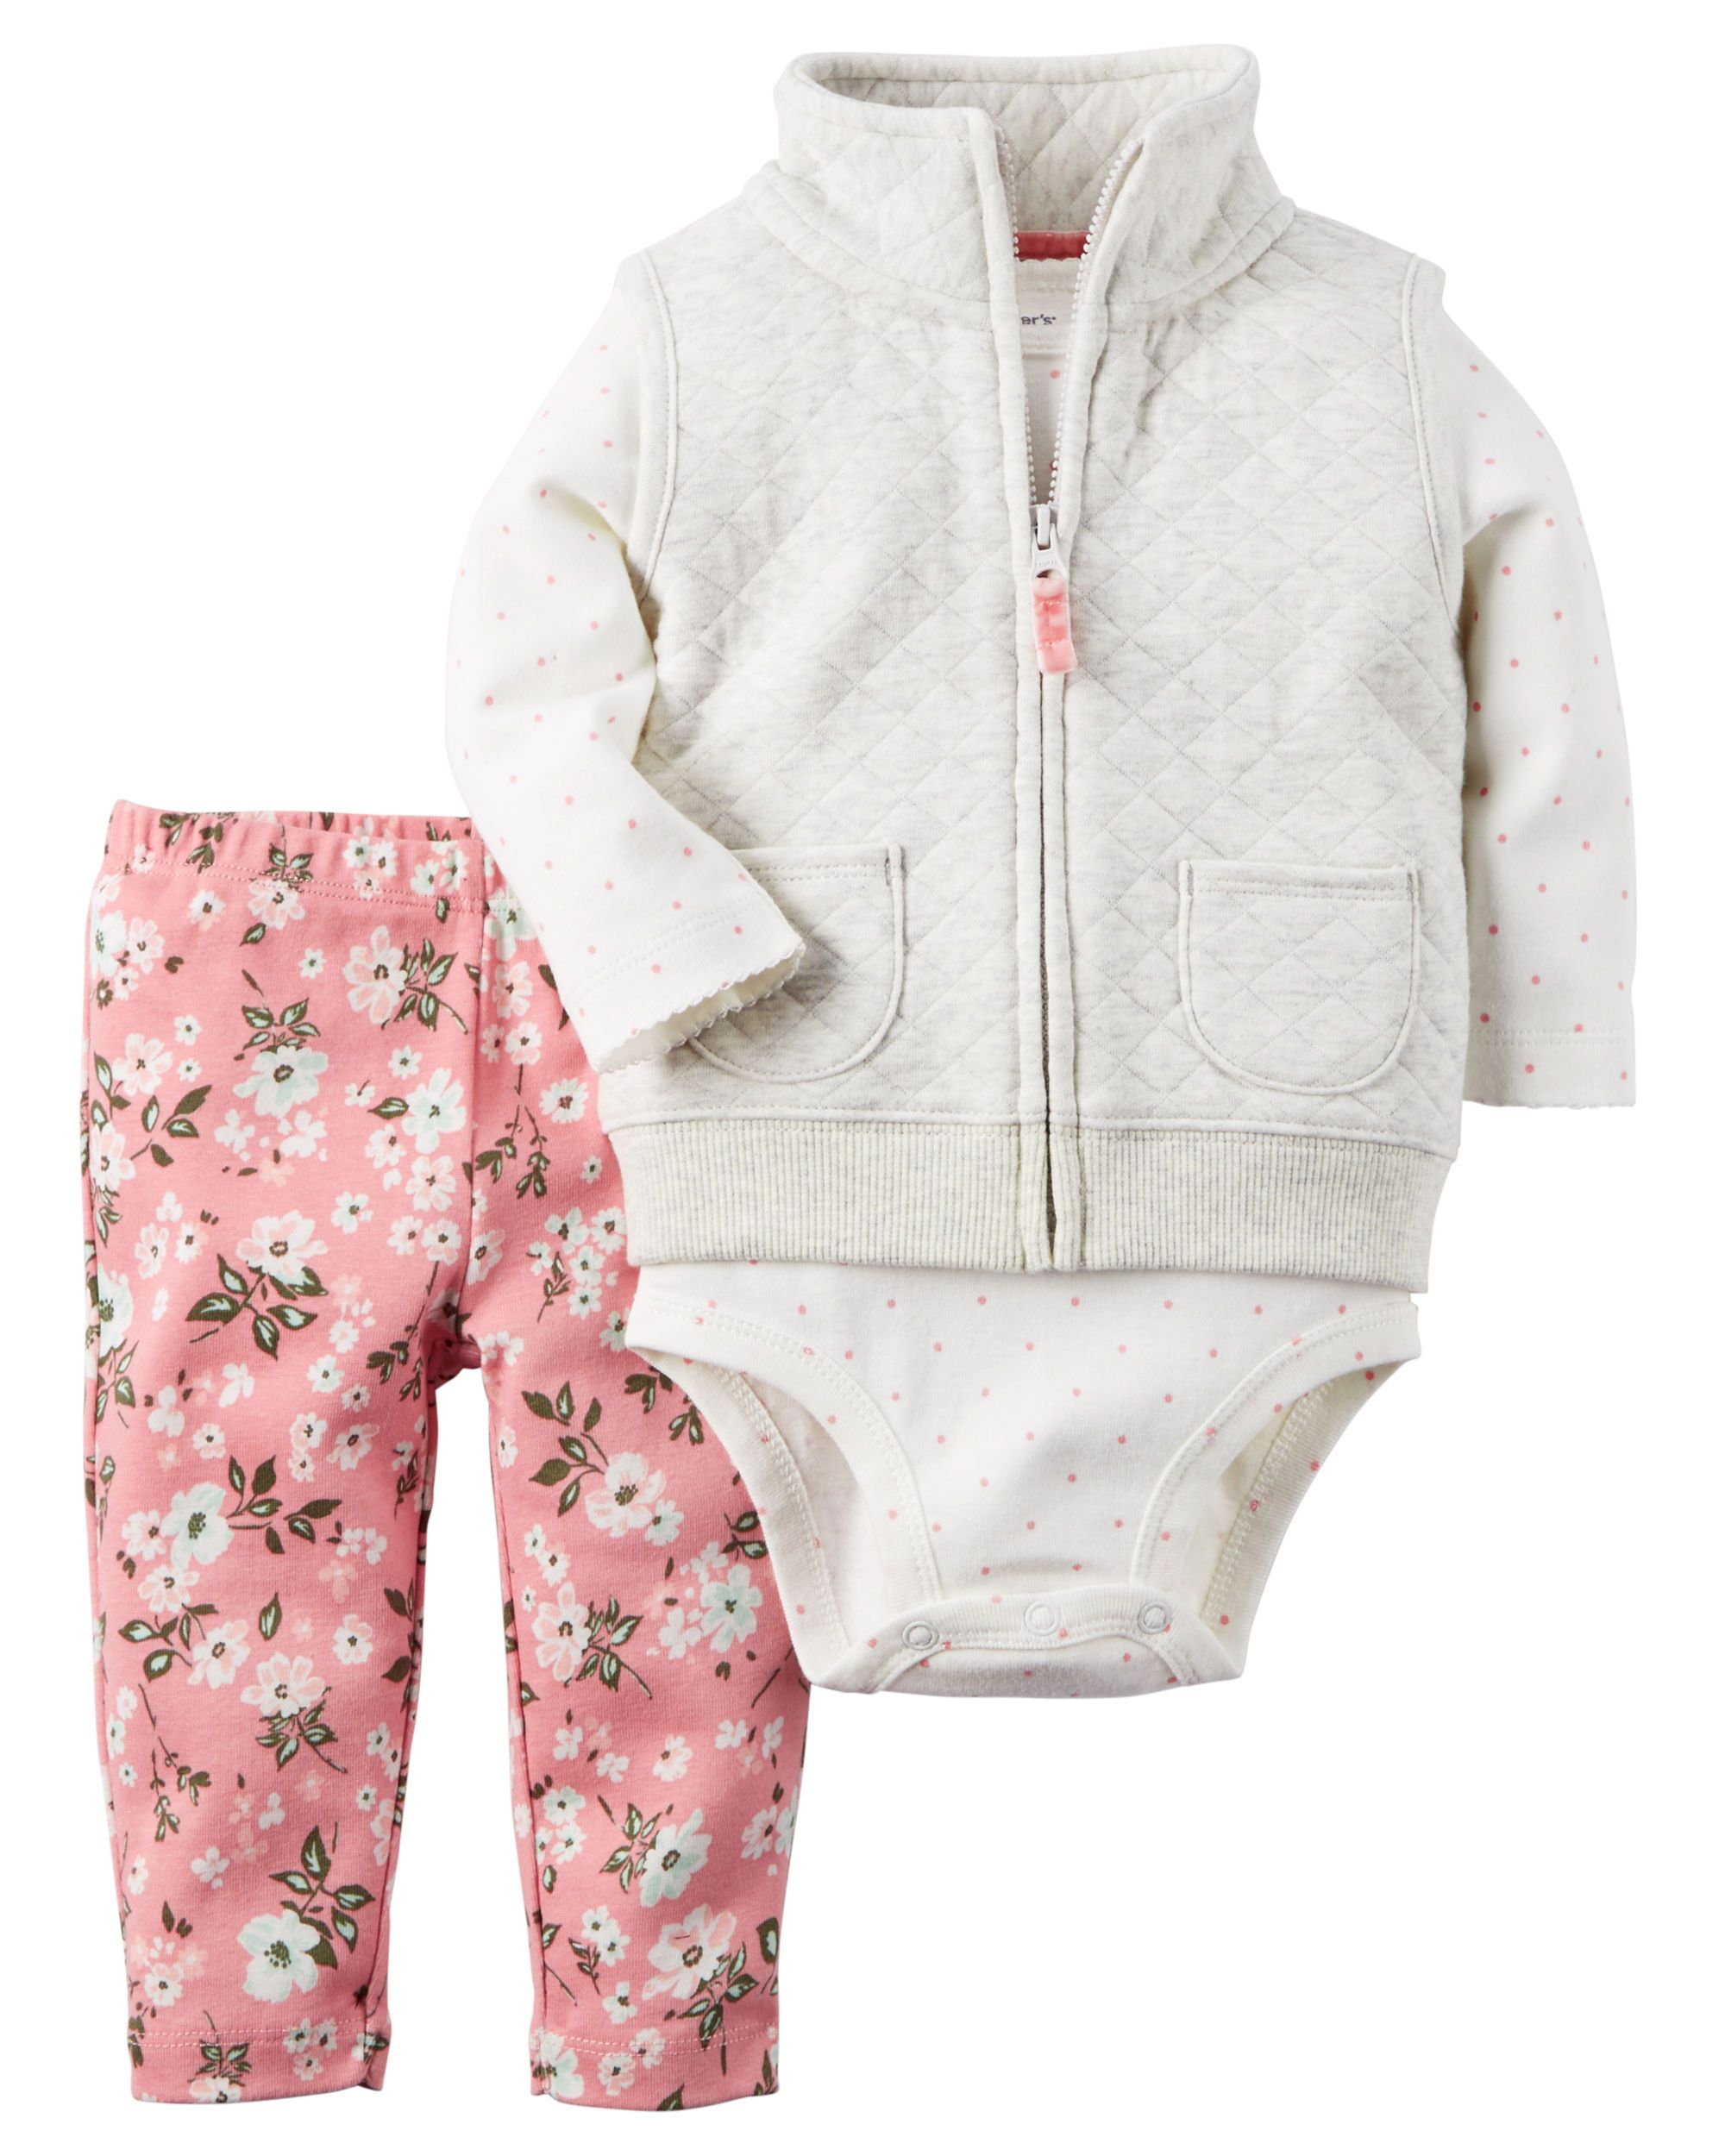 c920245c3 Baby Girl 3-Piece Little Vest Set from Carters.com. Shop clothing &  accessories from a trusted name in kids, toddlers, and baby clothes.